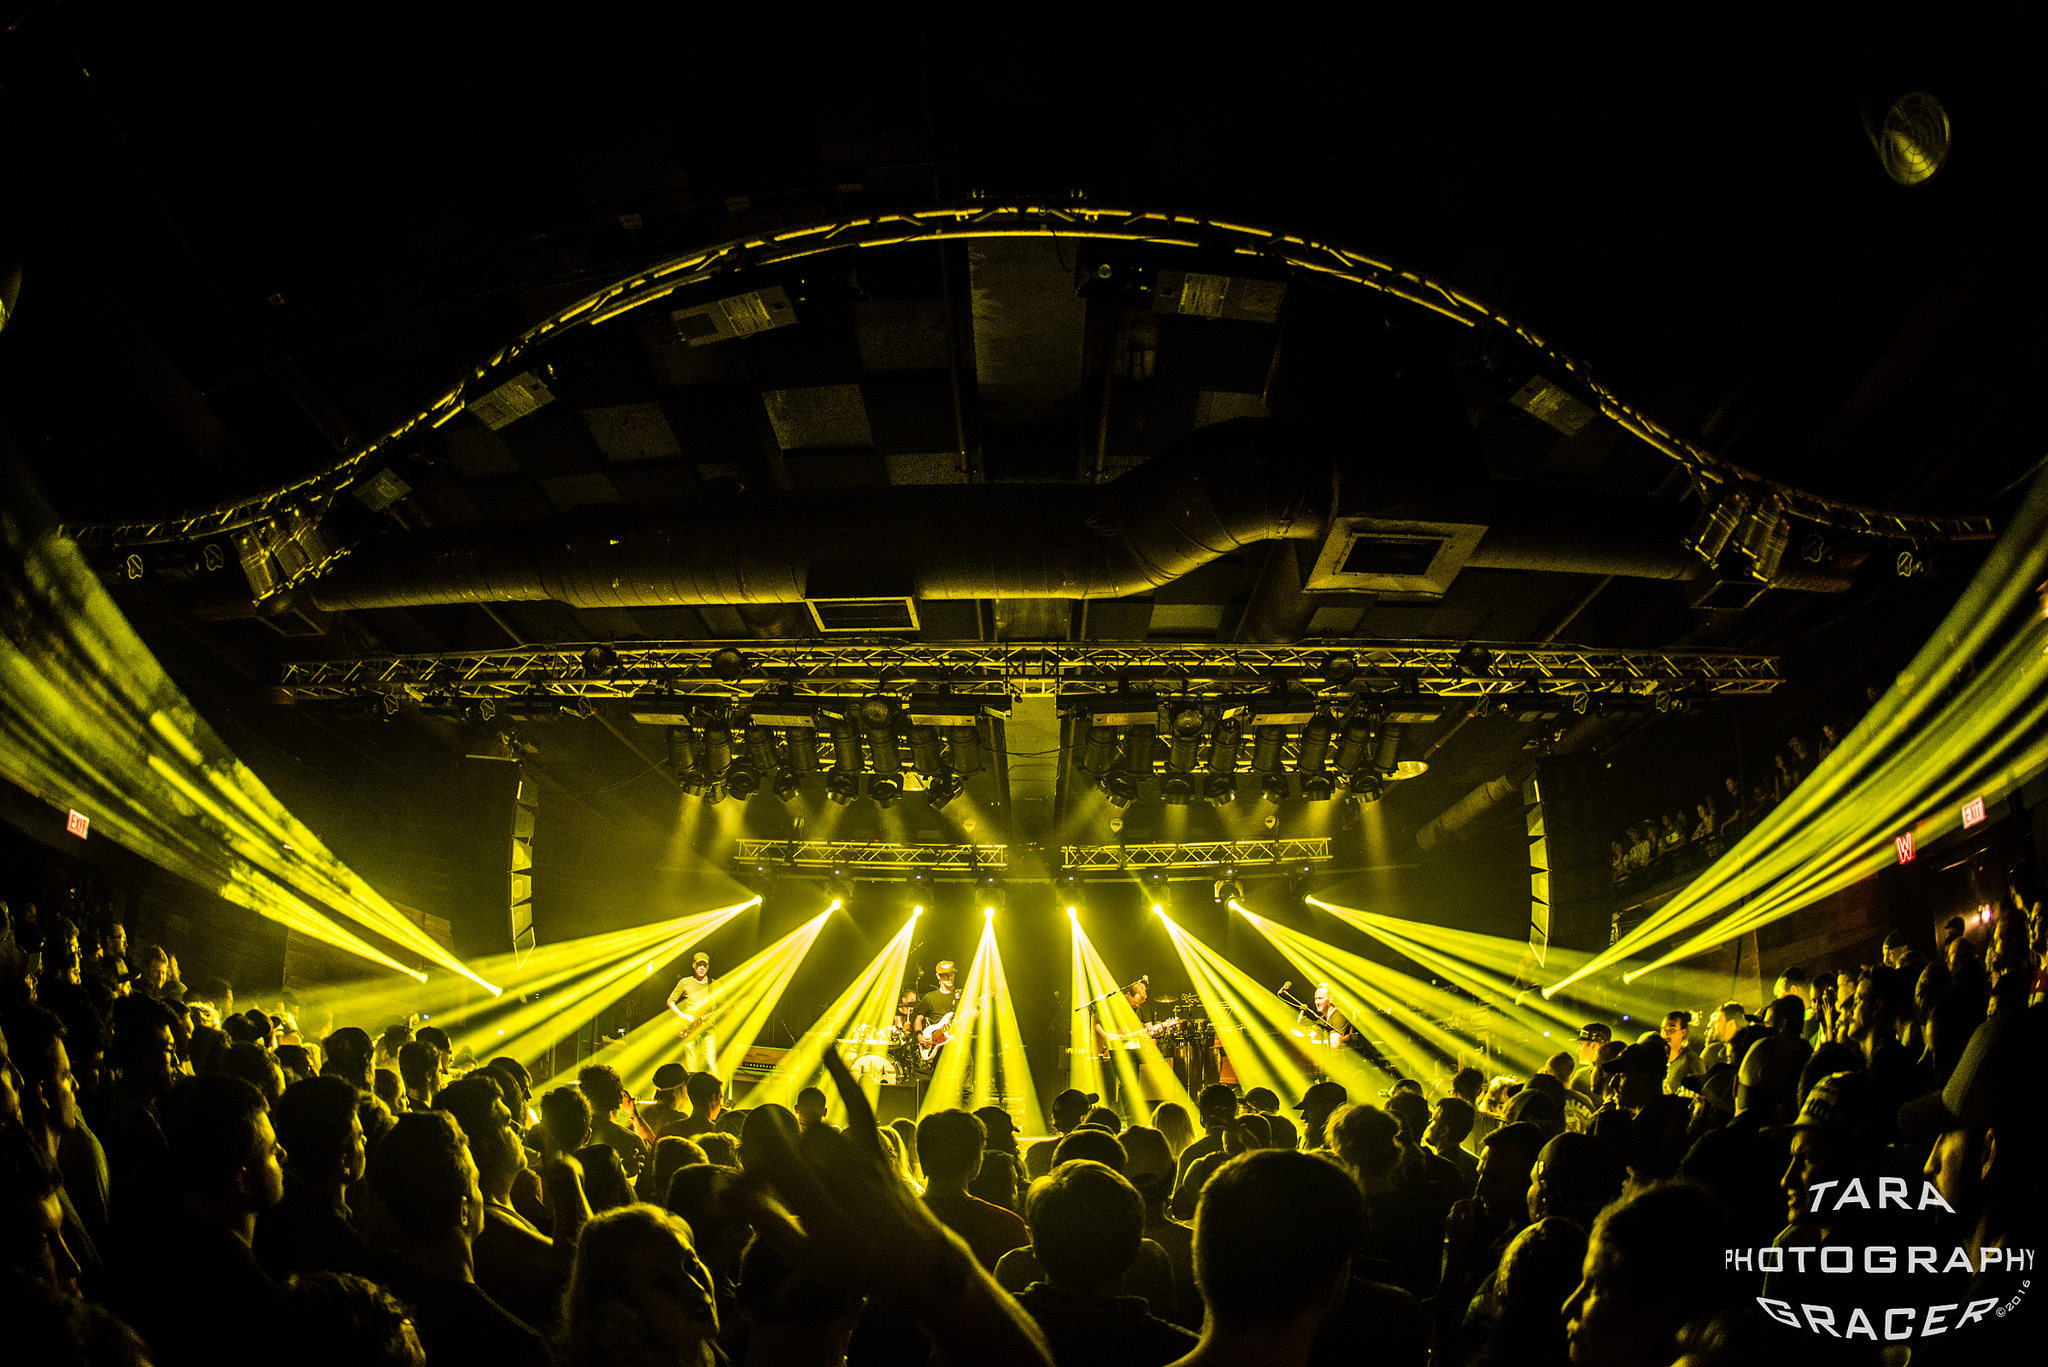 PHOTOS / MEDIA / NEWS | Umphrey's McGee Gives Chicago What It Wants